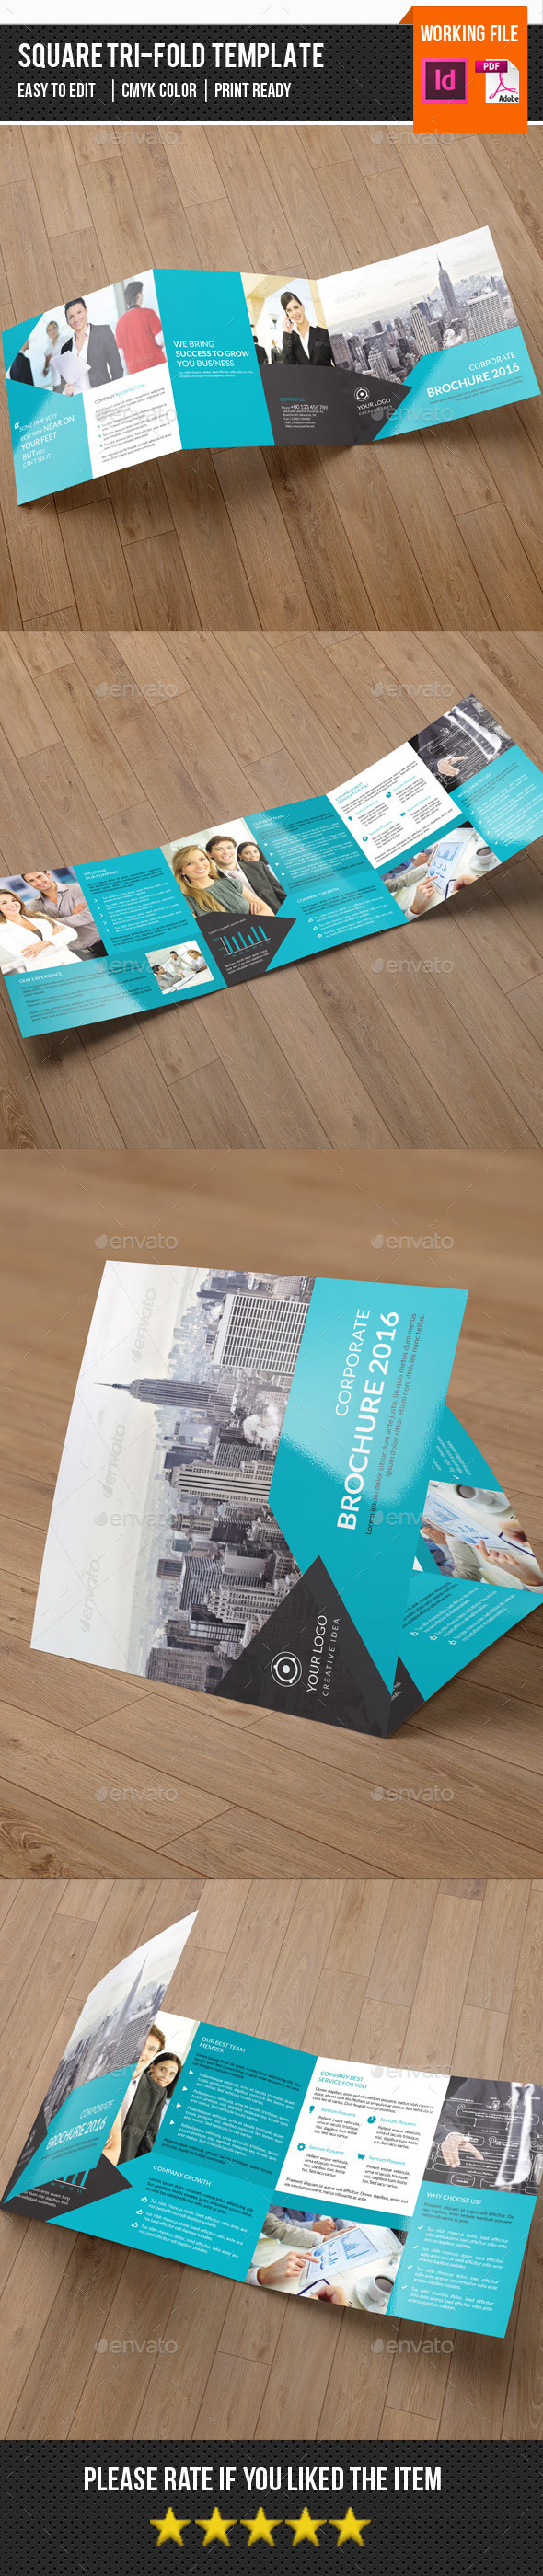 Corporate Square Trifold-V76 - Corporate Brochures